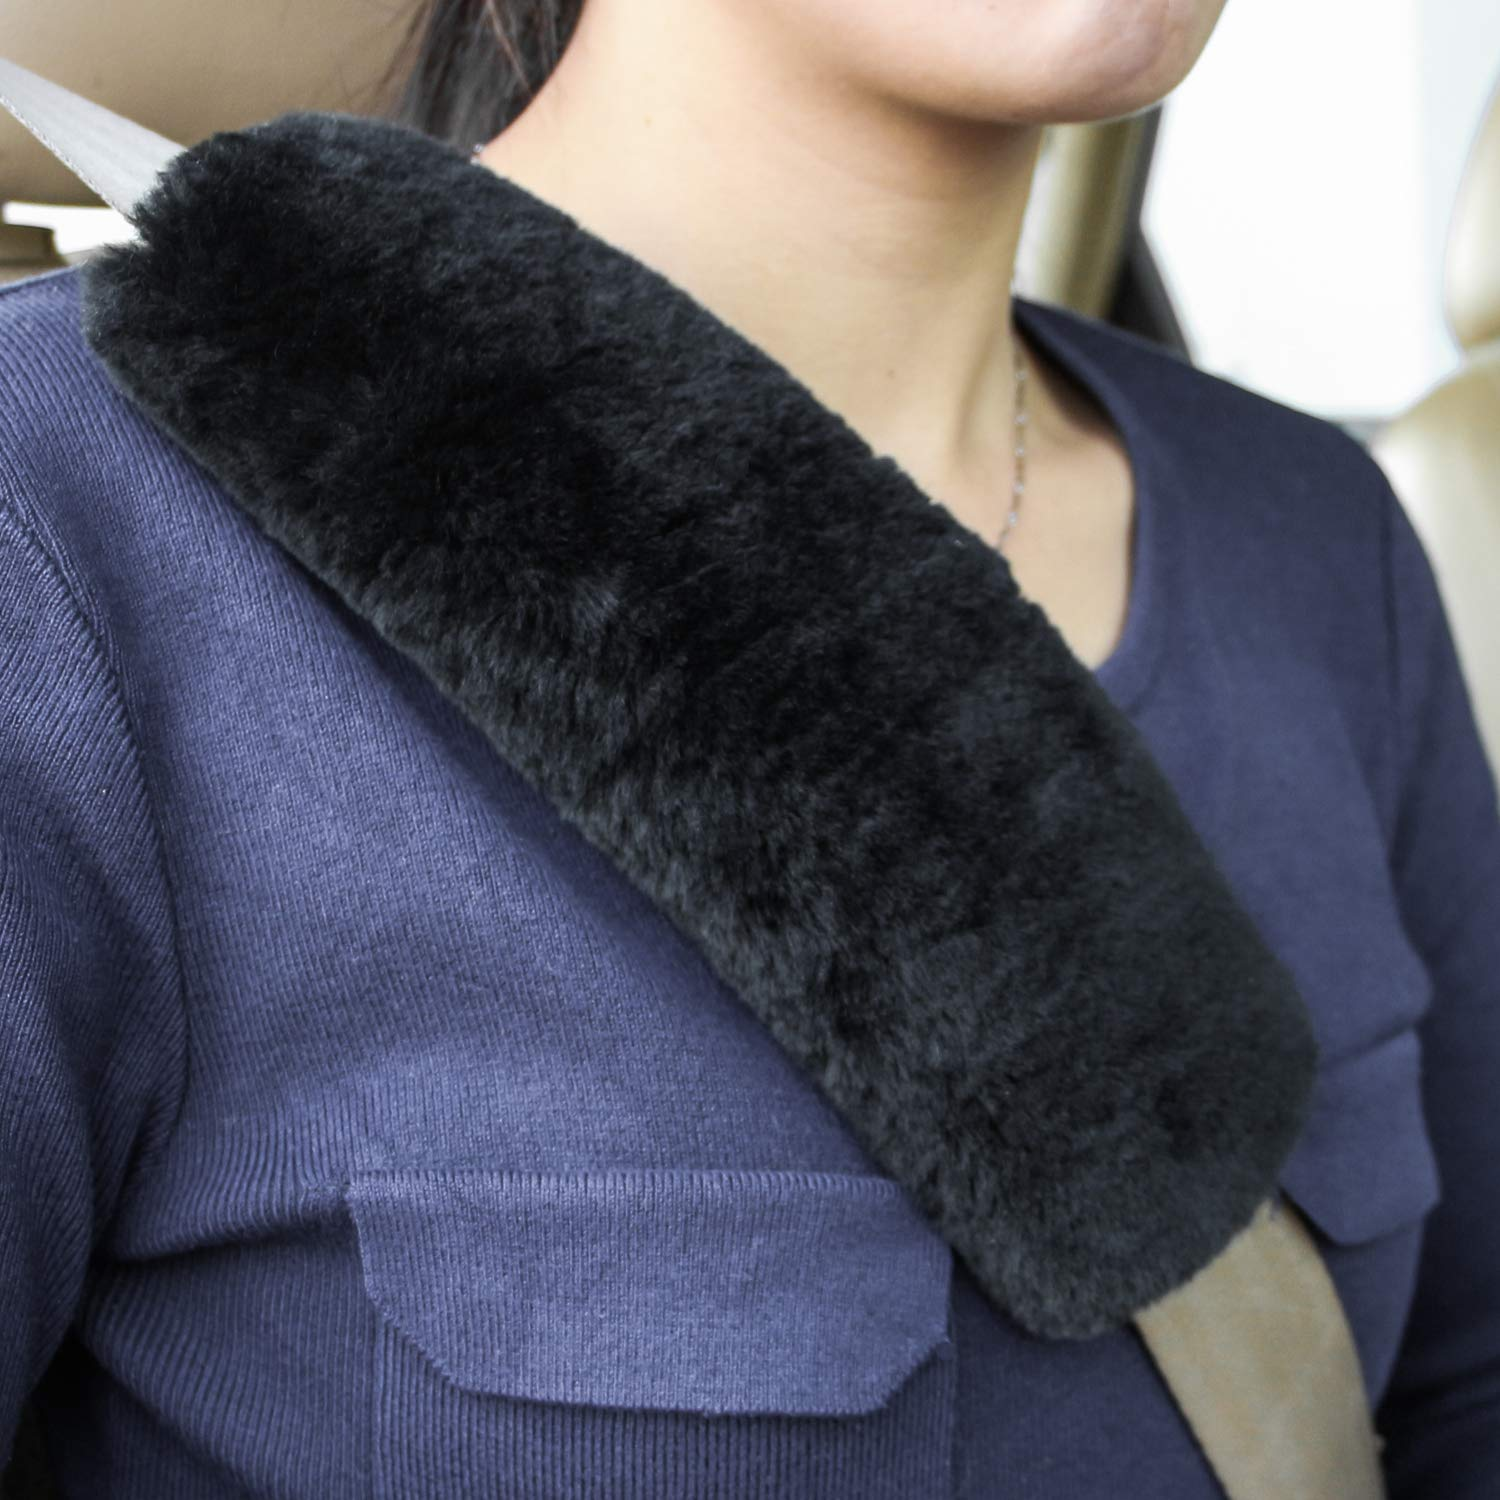 ROYAGO Soft Genuine Sheepskin Wool Auto Seat Belt Cover Seatbelt Shoulder Pad for a More Comfortable Driving, Compatible with All Cars(Black)